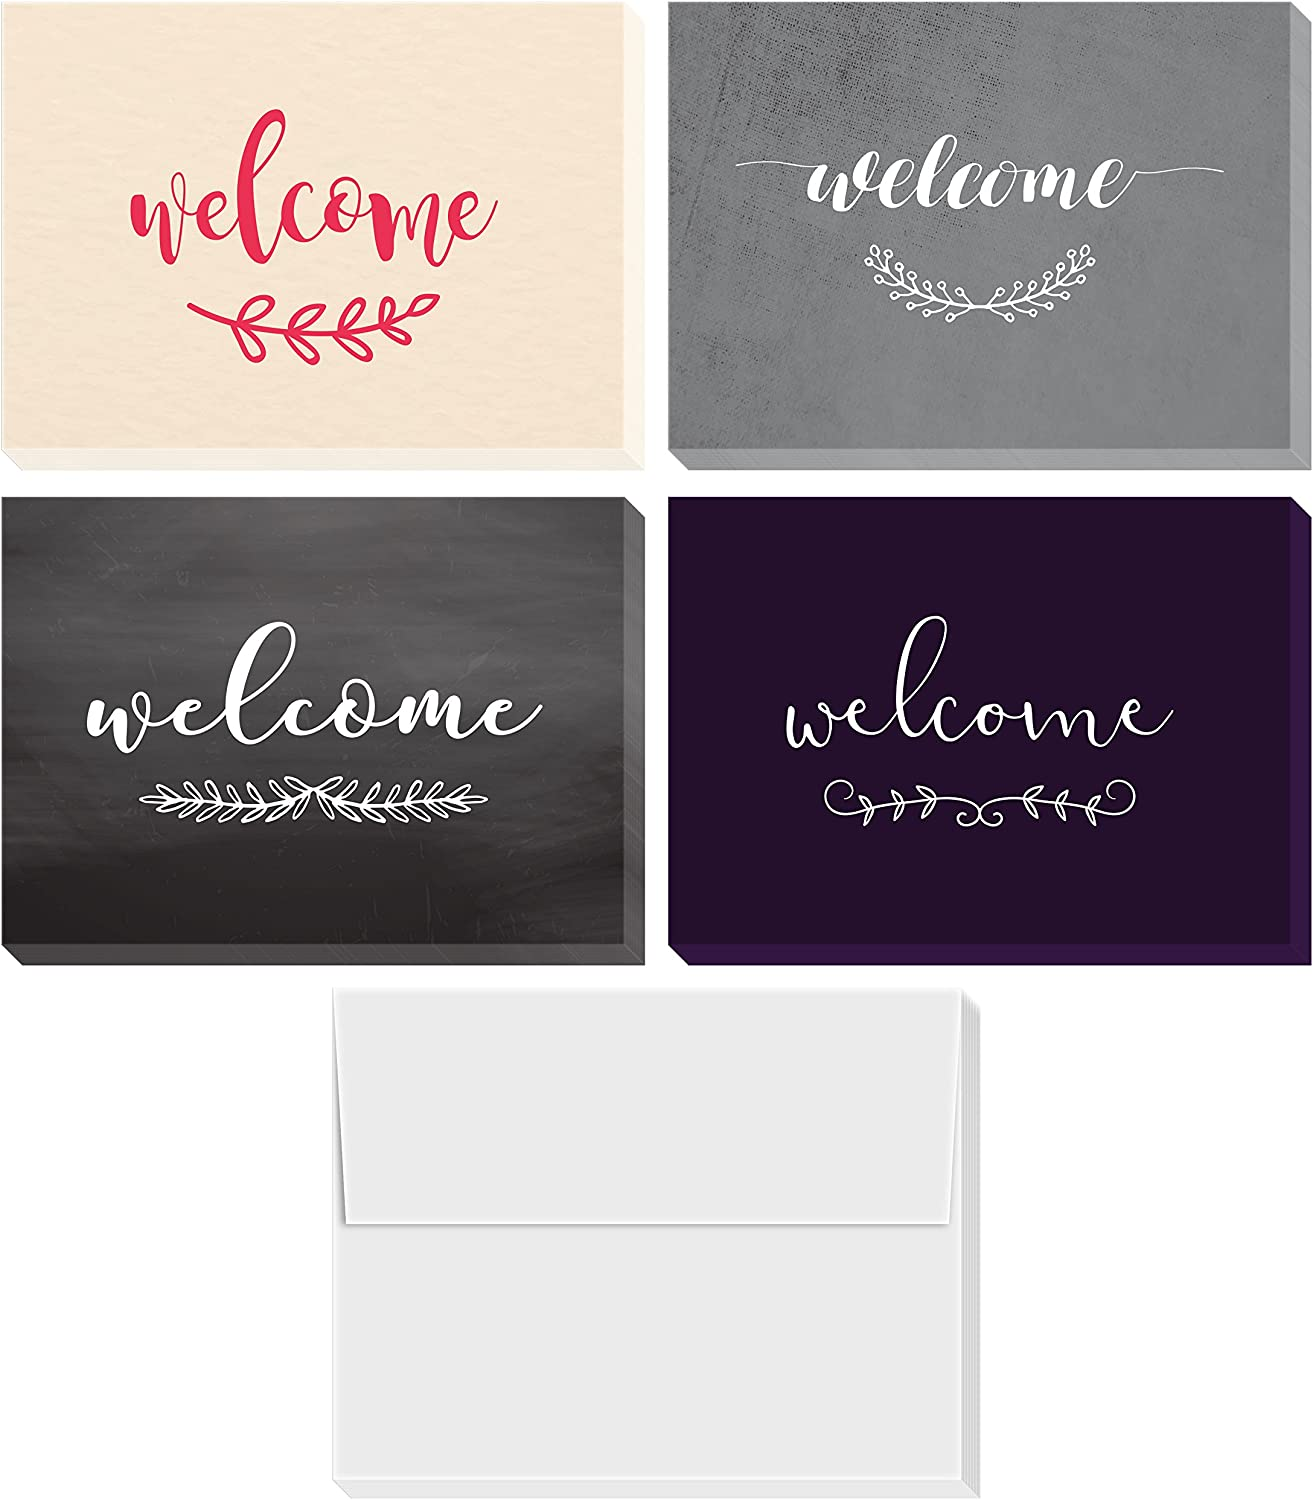 Welcome Cards Box Set | Includes 36 Assorted Greeting Cards and Envelopes - Blank on the Inside - 4 by 6 Inches